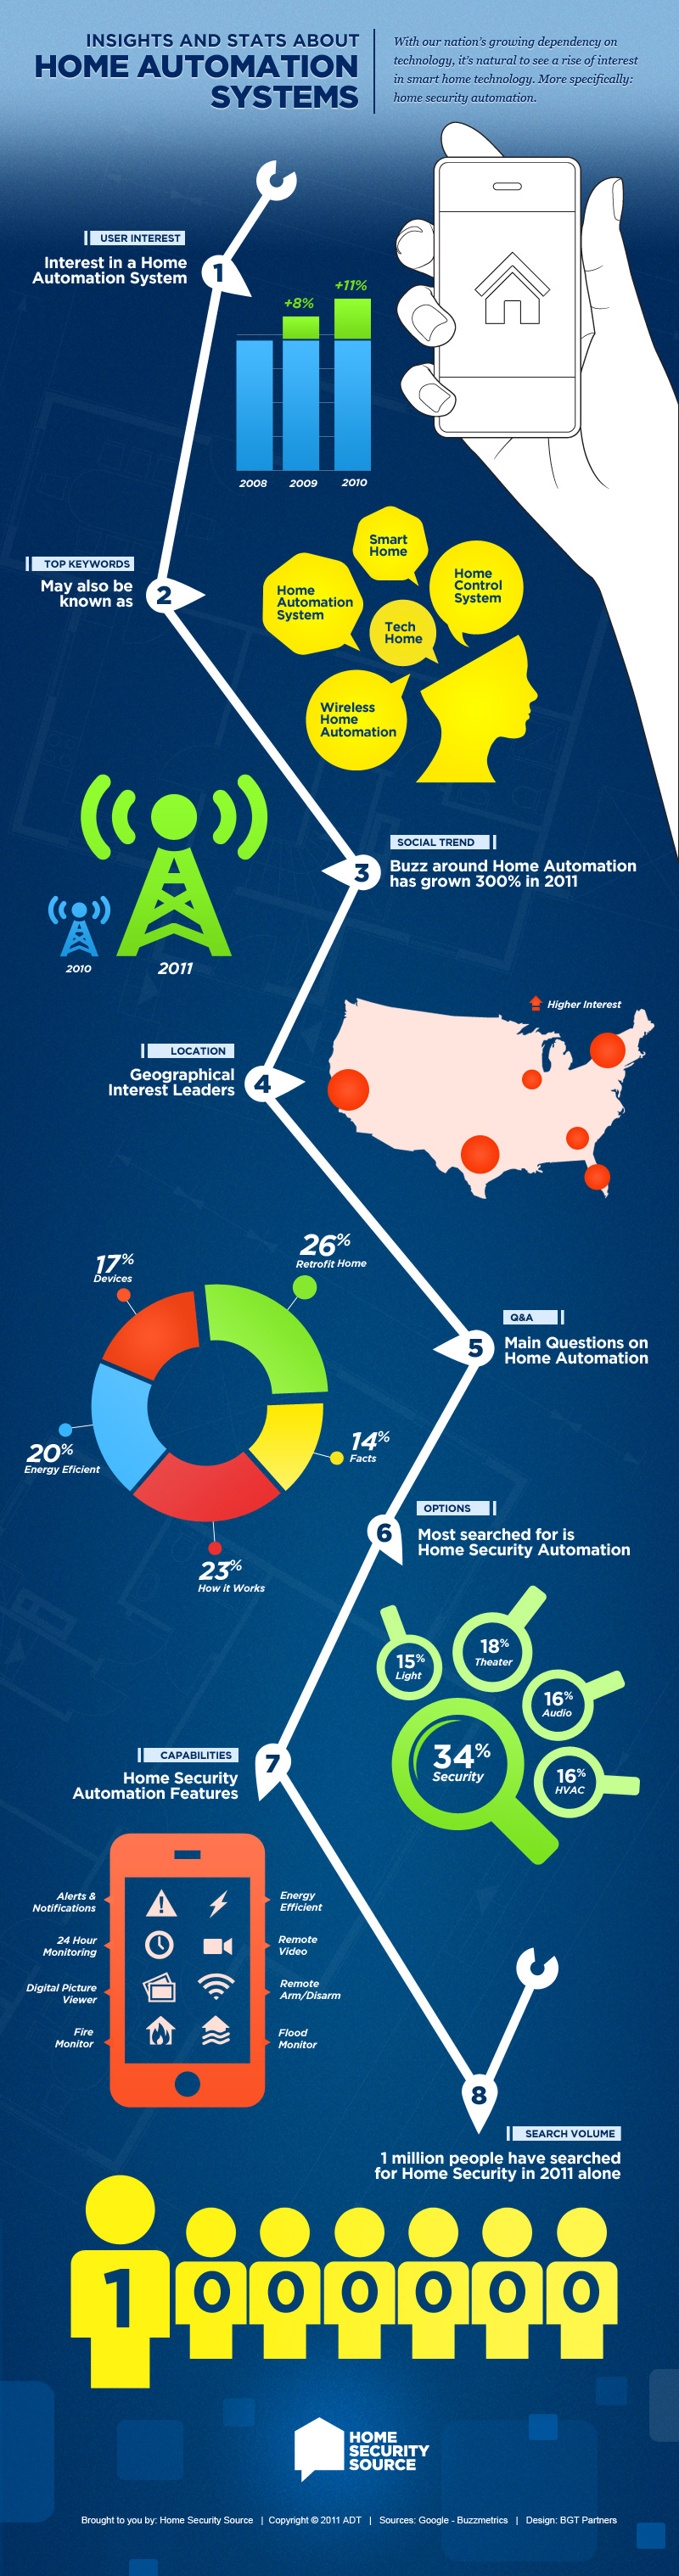 HomeAutomation-infographic